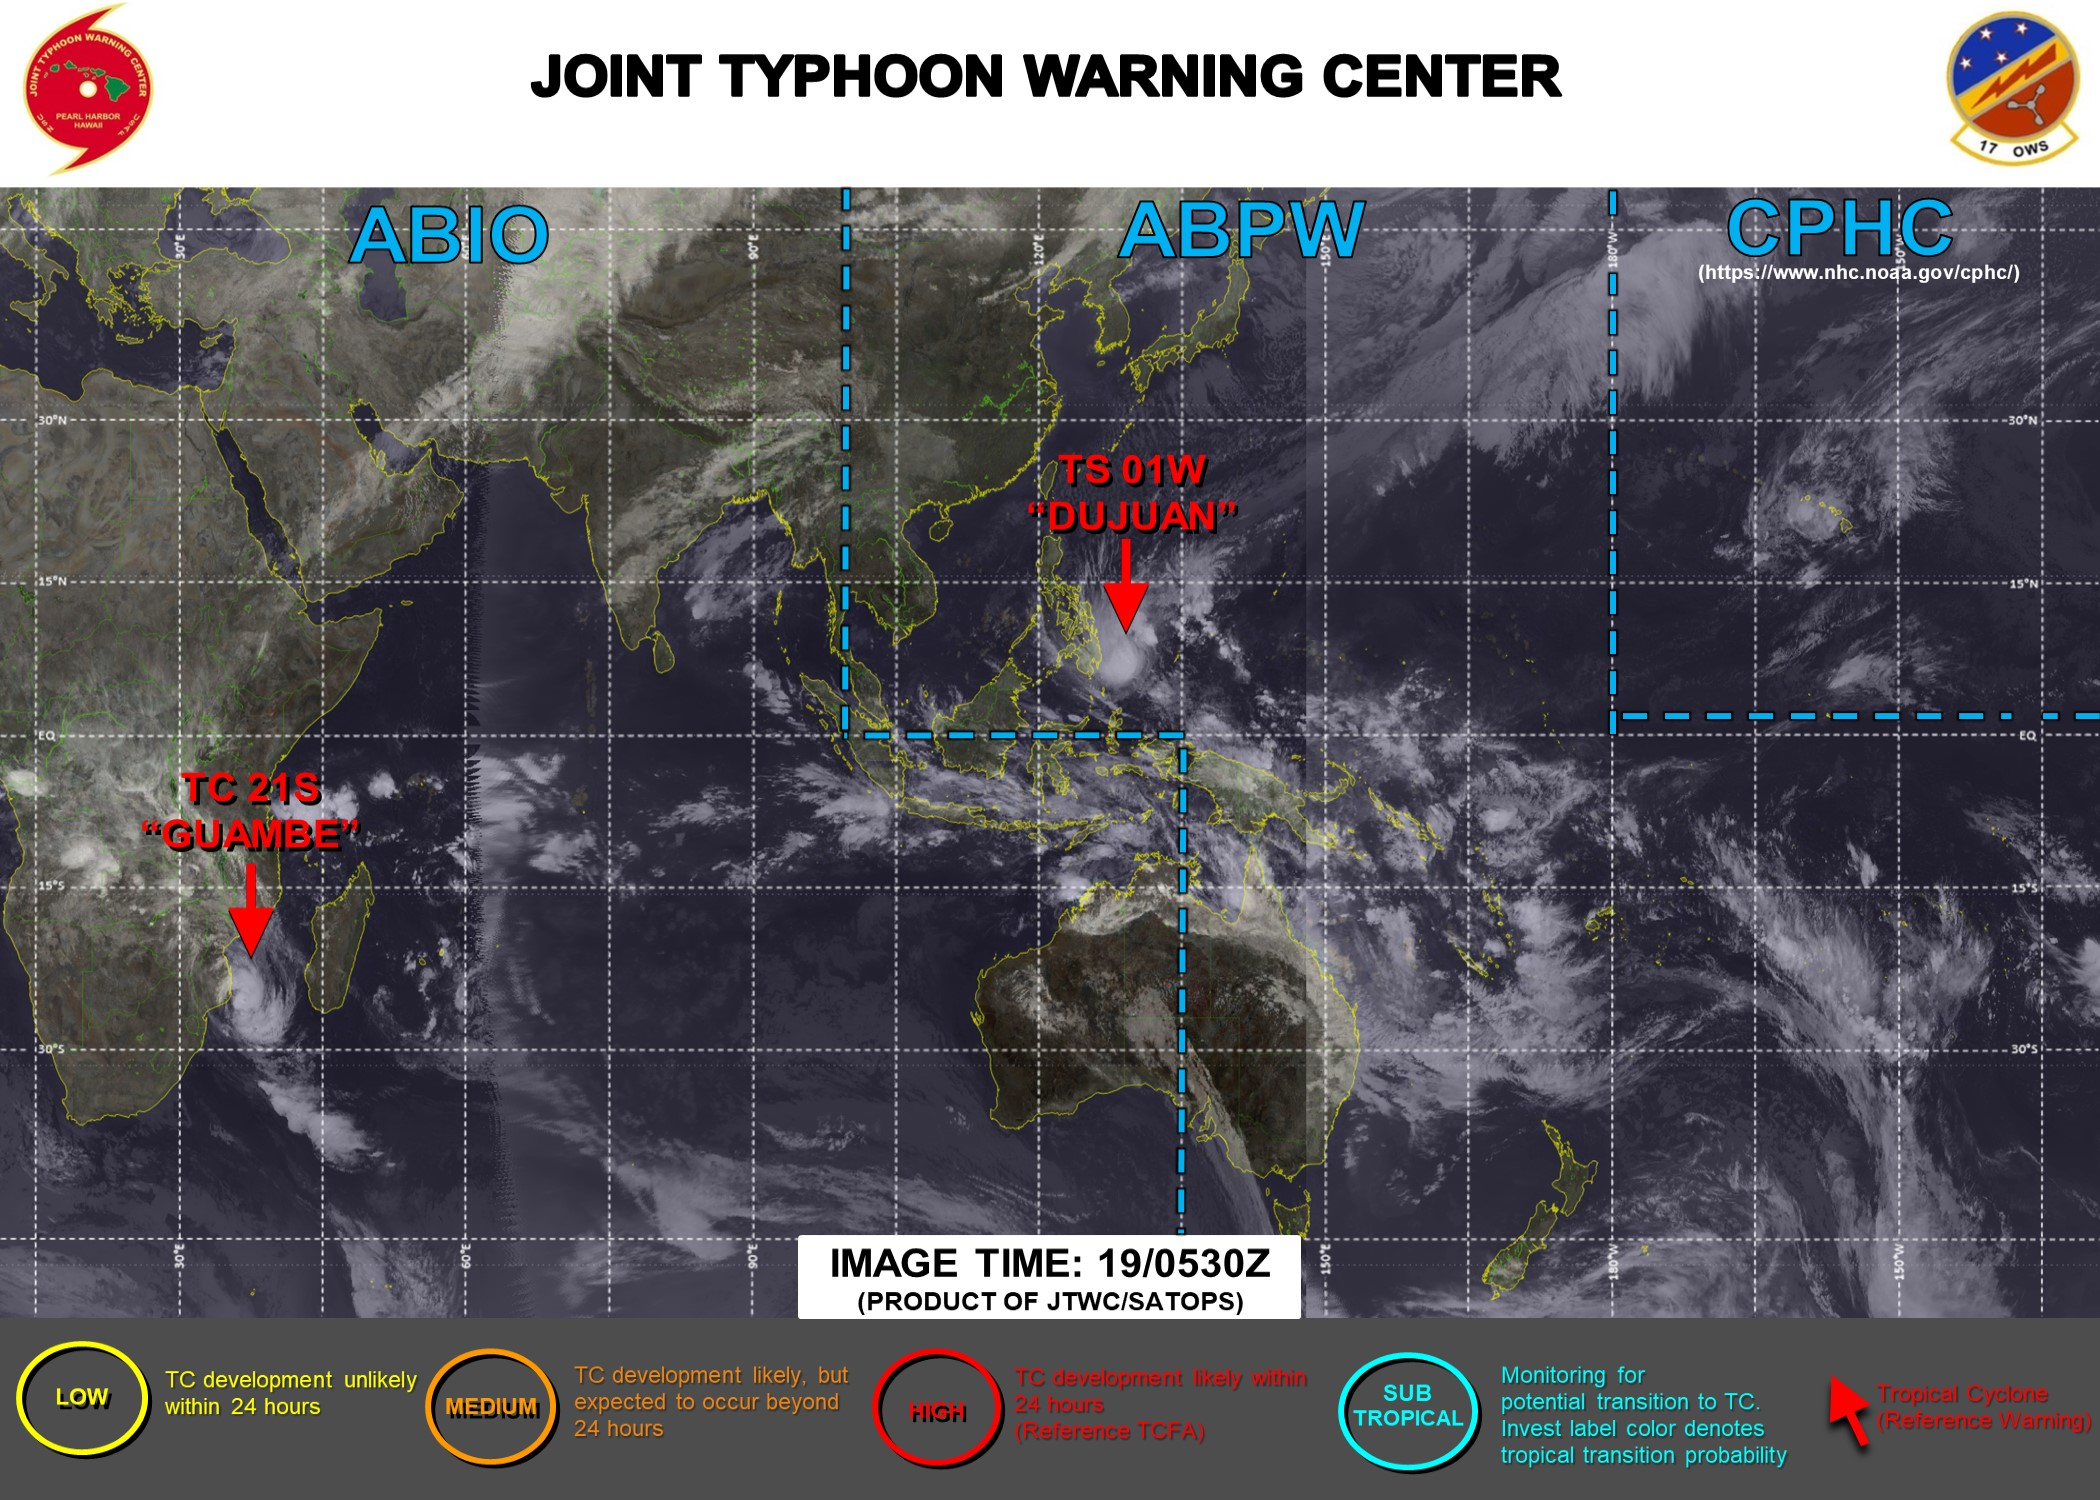 19/06UTC. JTWC IS ISSUING 6HOURLY WARNINGS ON 01W AND 12HOURLY WARNINGS ON 21S. 3 HOURLY SATELLITE BULLETINS ARE ISSUED FOR BOTH SYSTEMS.